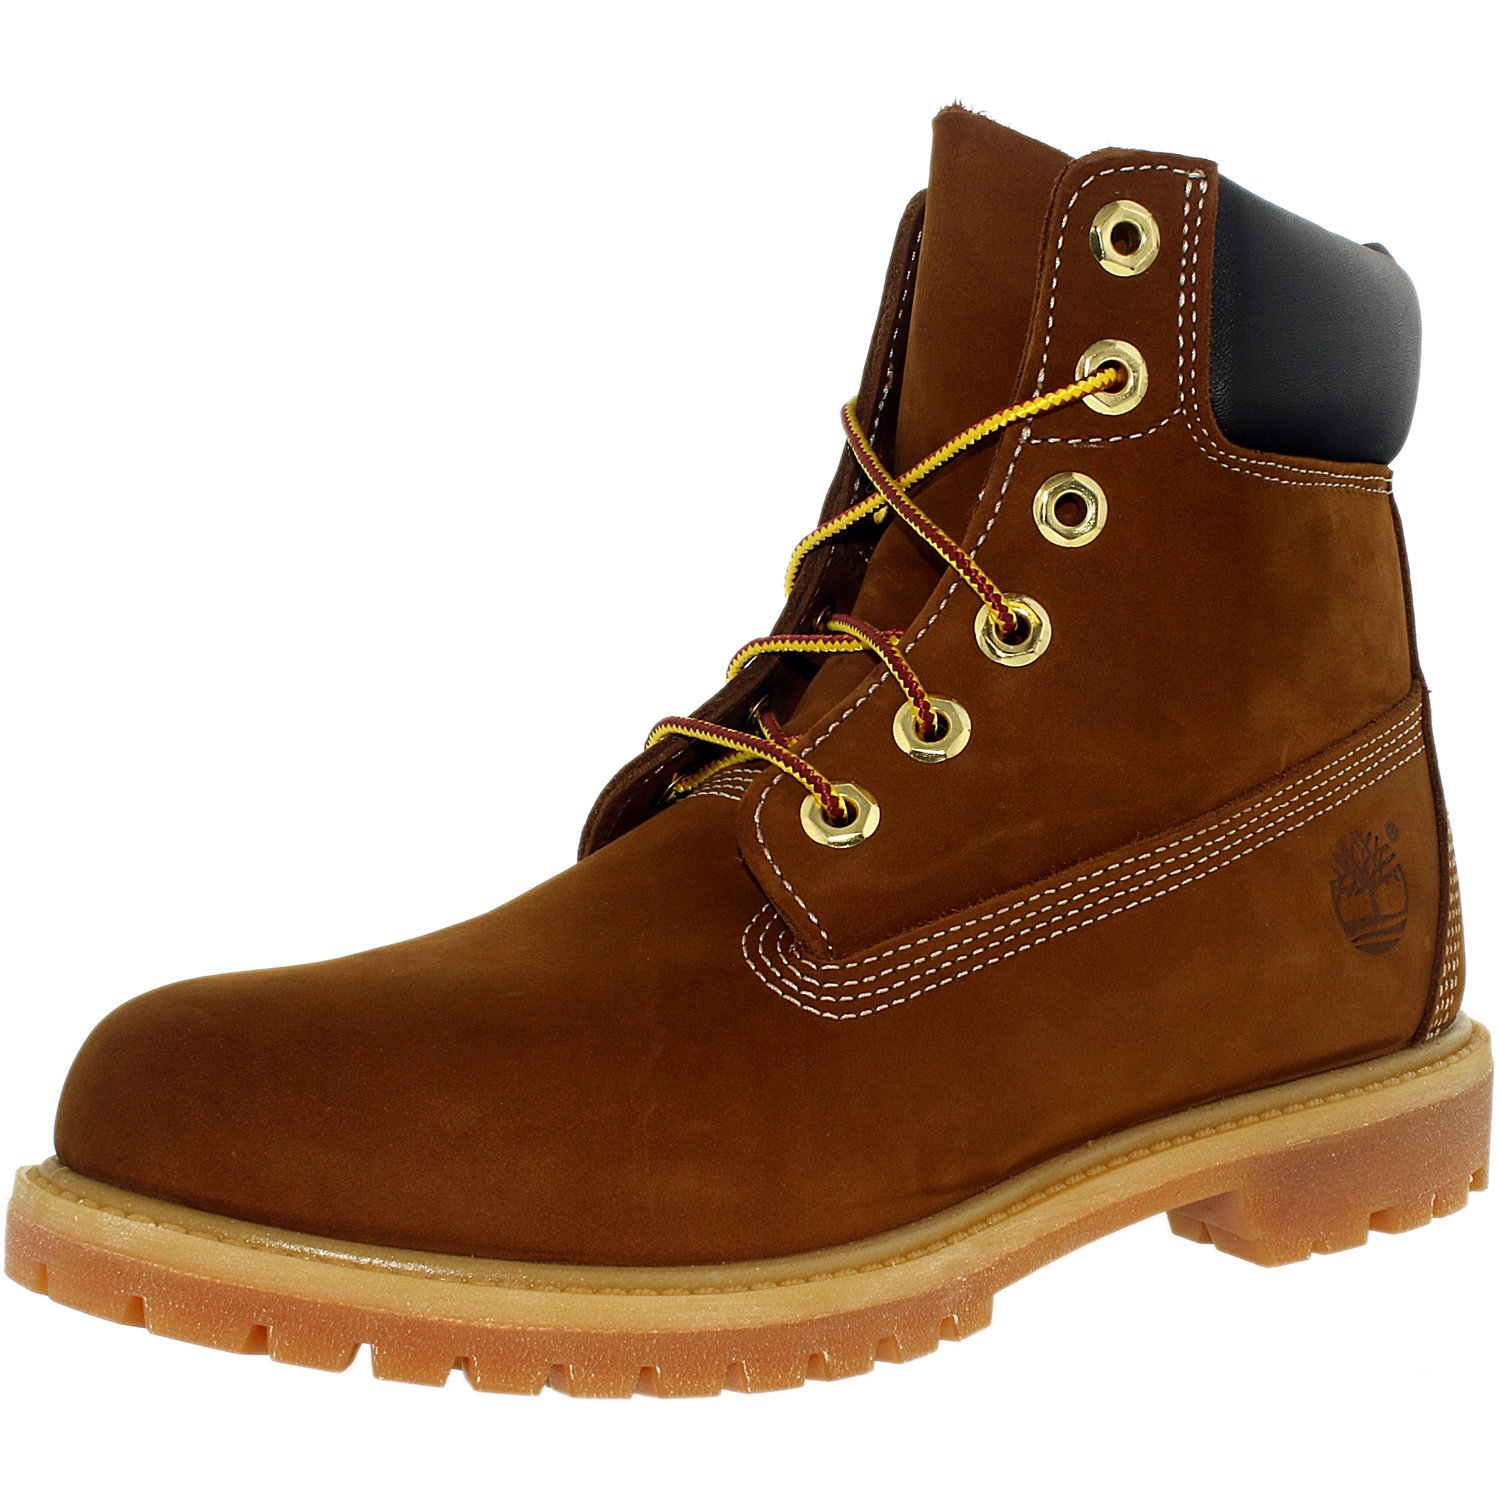 Timberland Women's 6 Inch Premium Boot Leather Rust Brown High Top Boot 6.5W